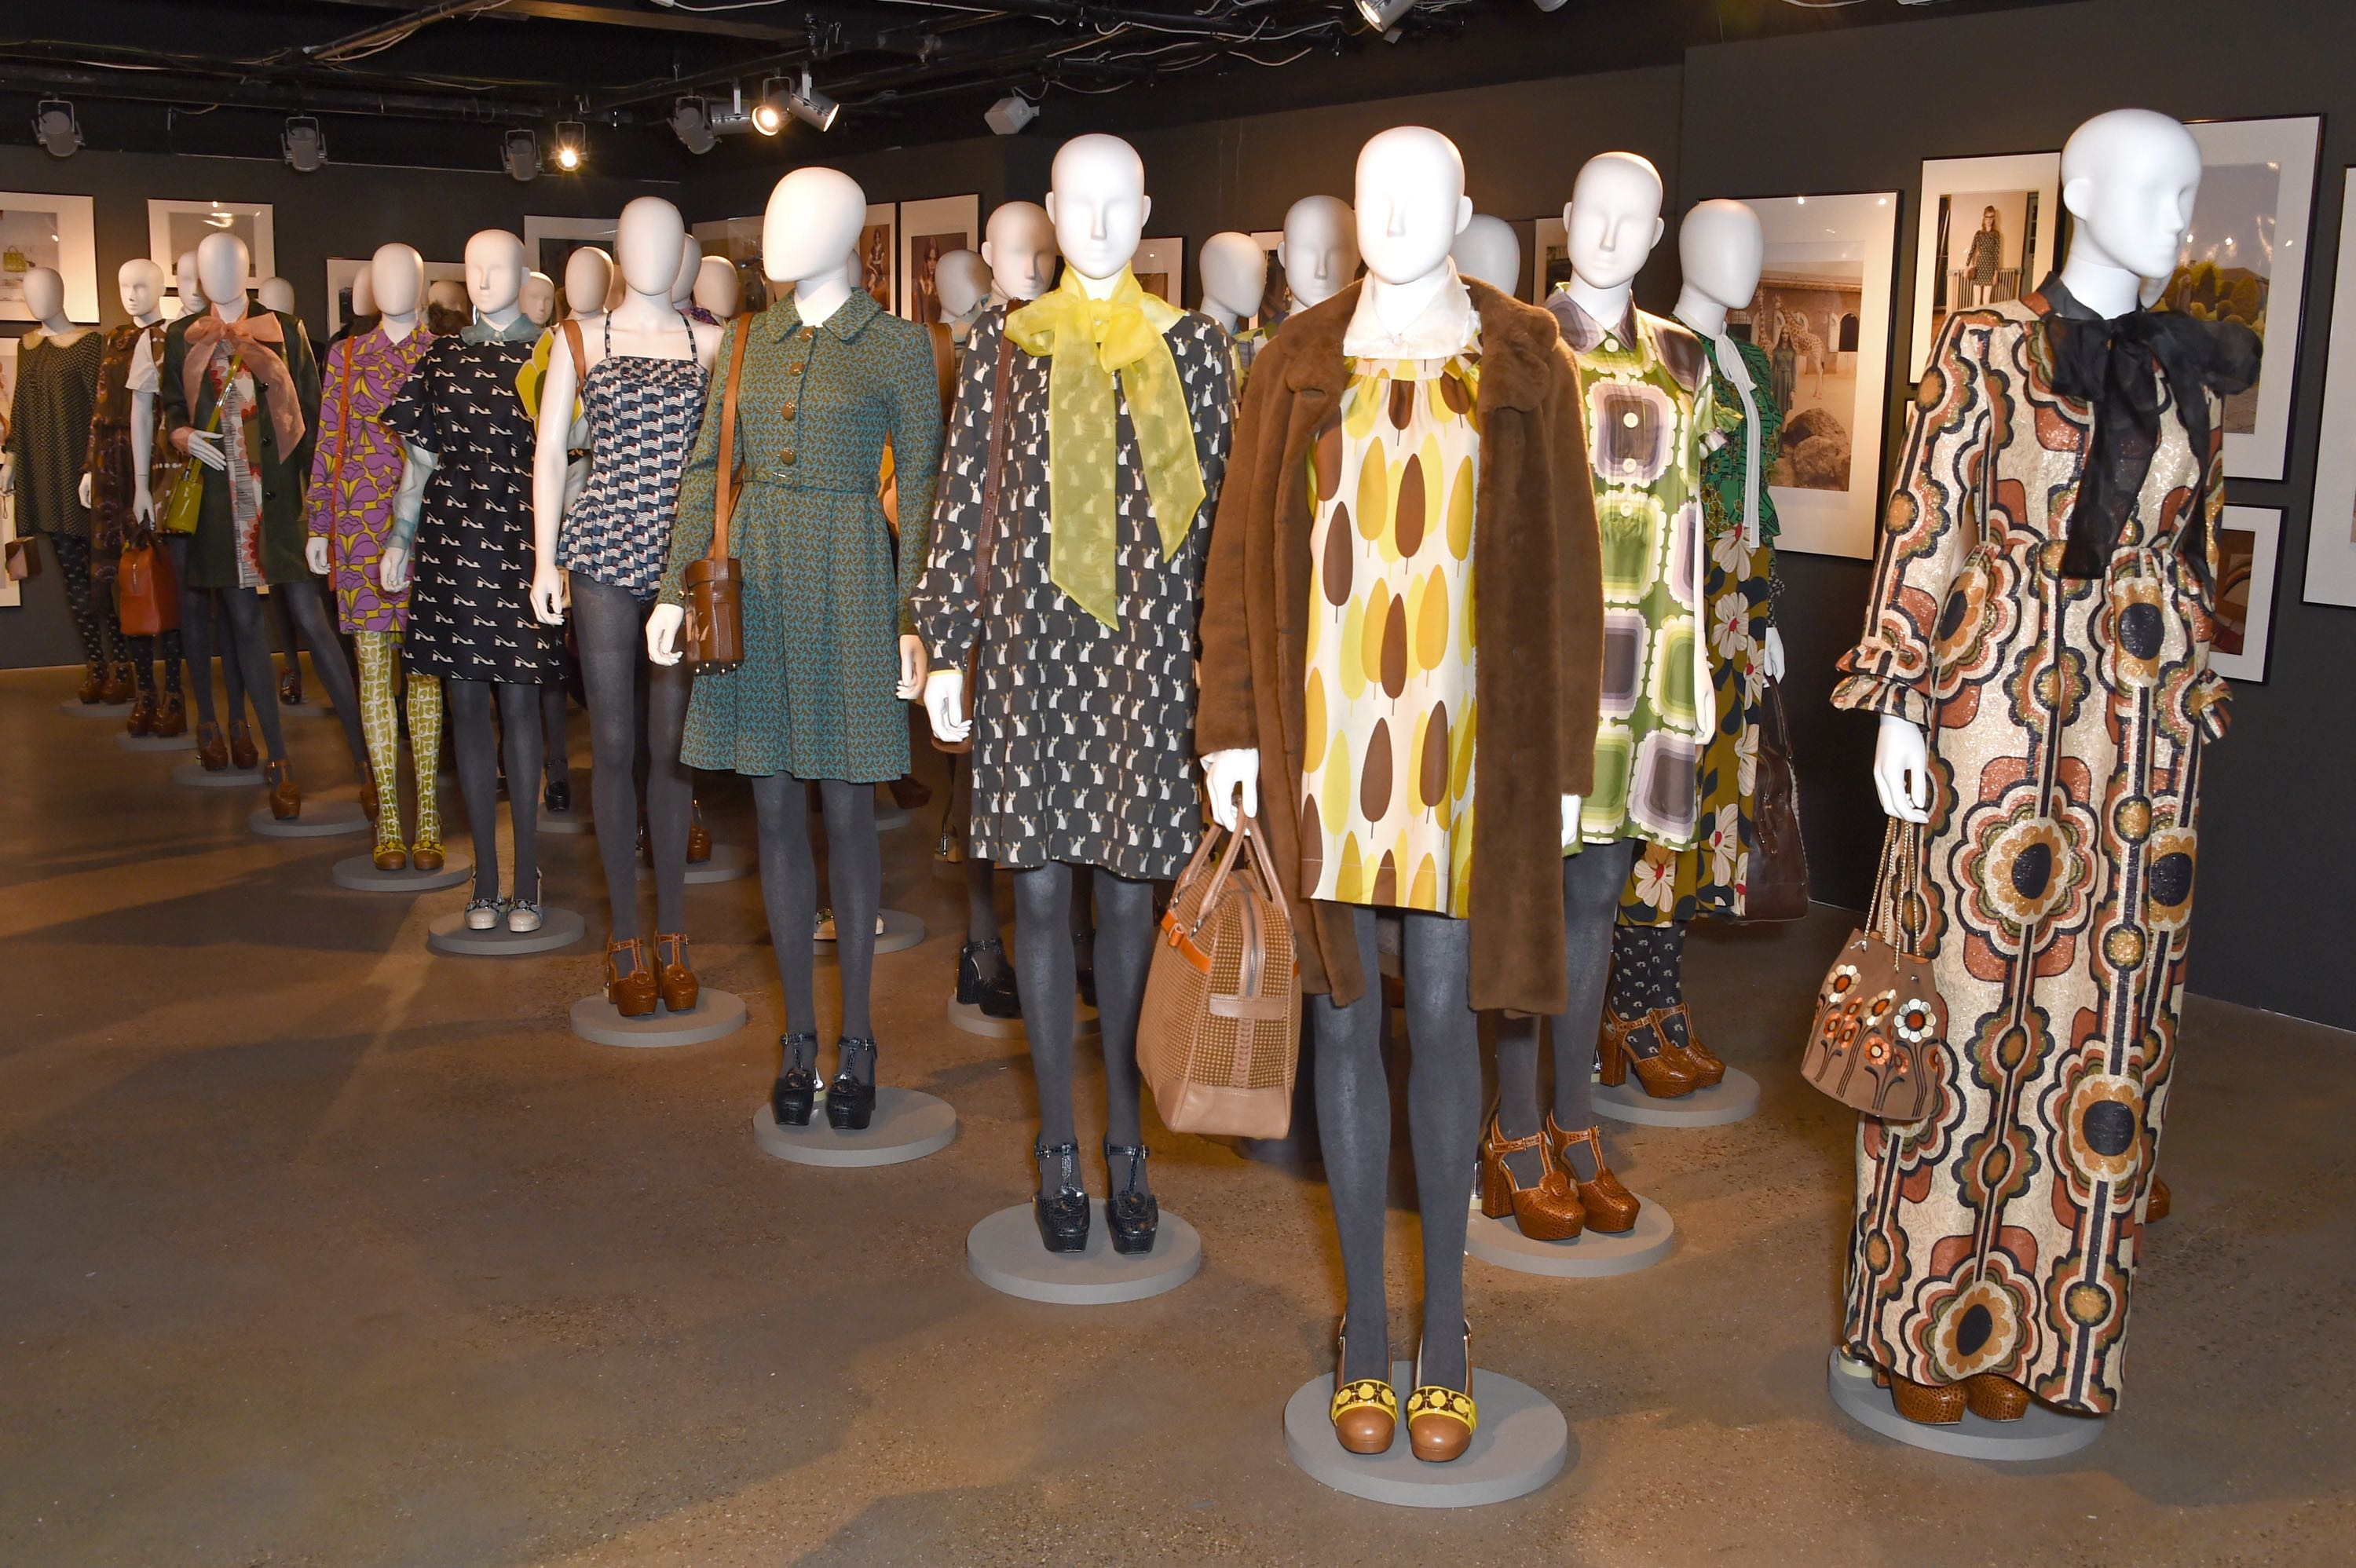 The Orla Kiely: A Life in Pattern exhibition